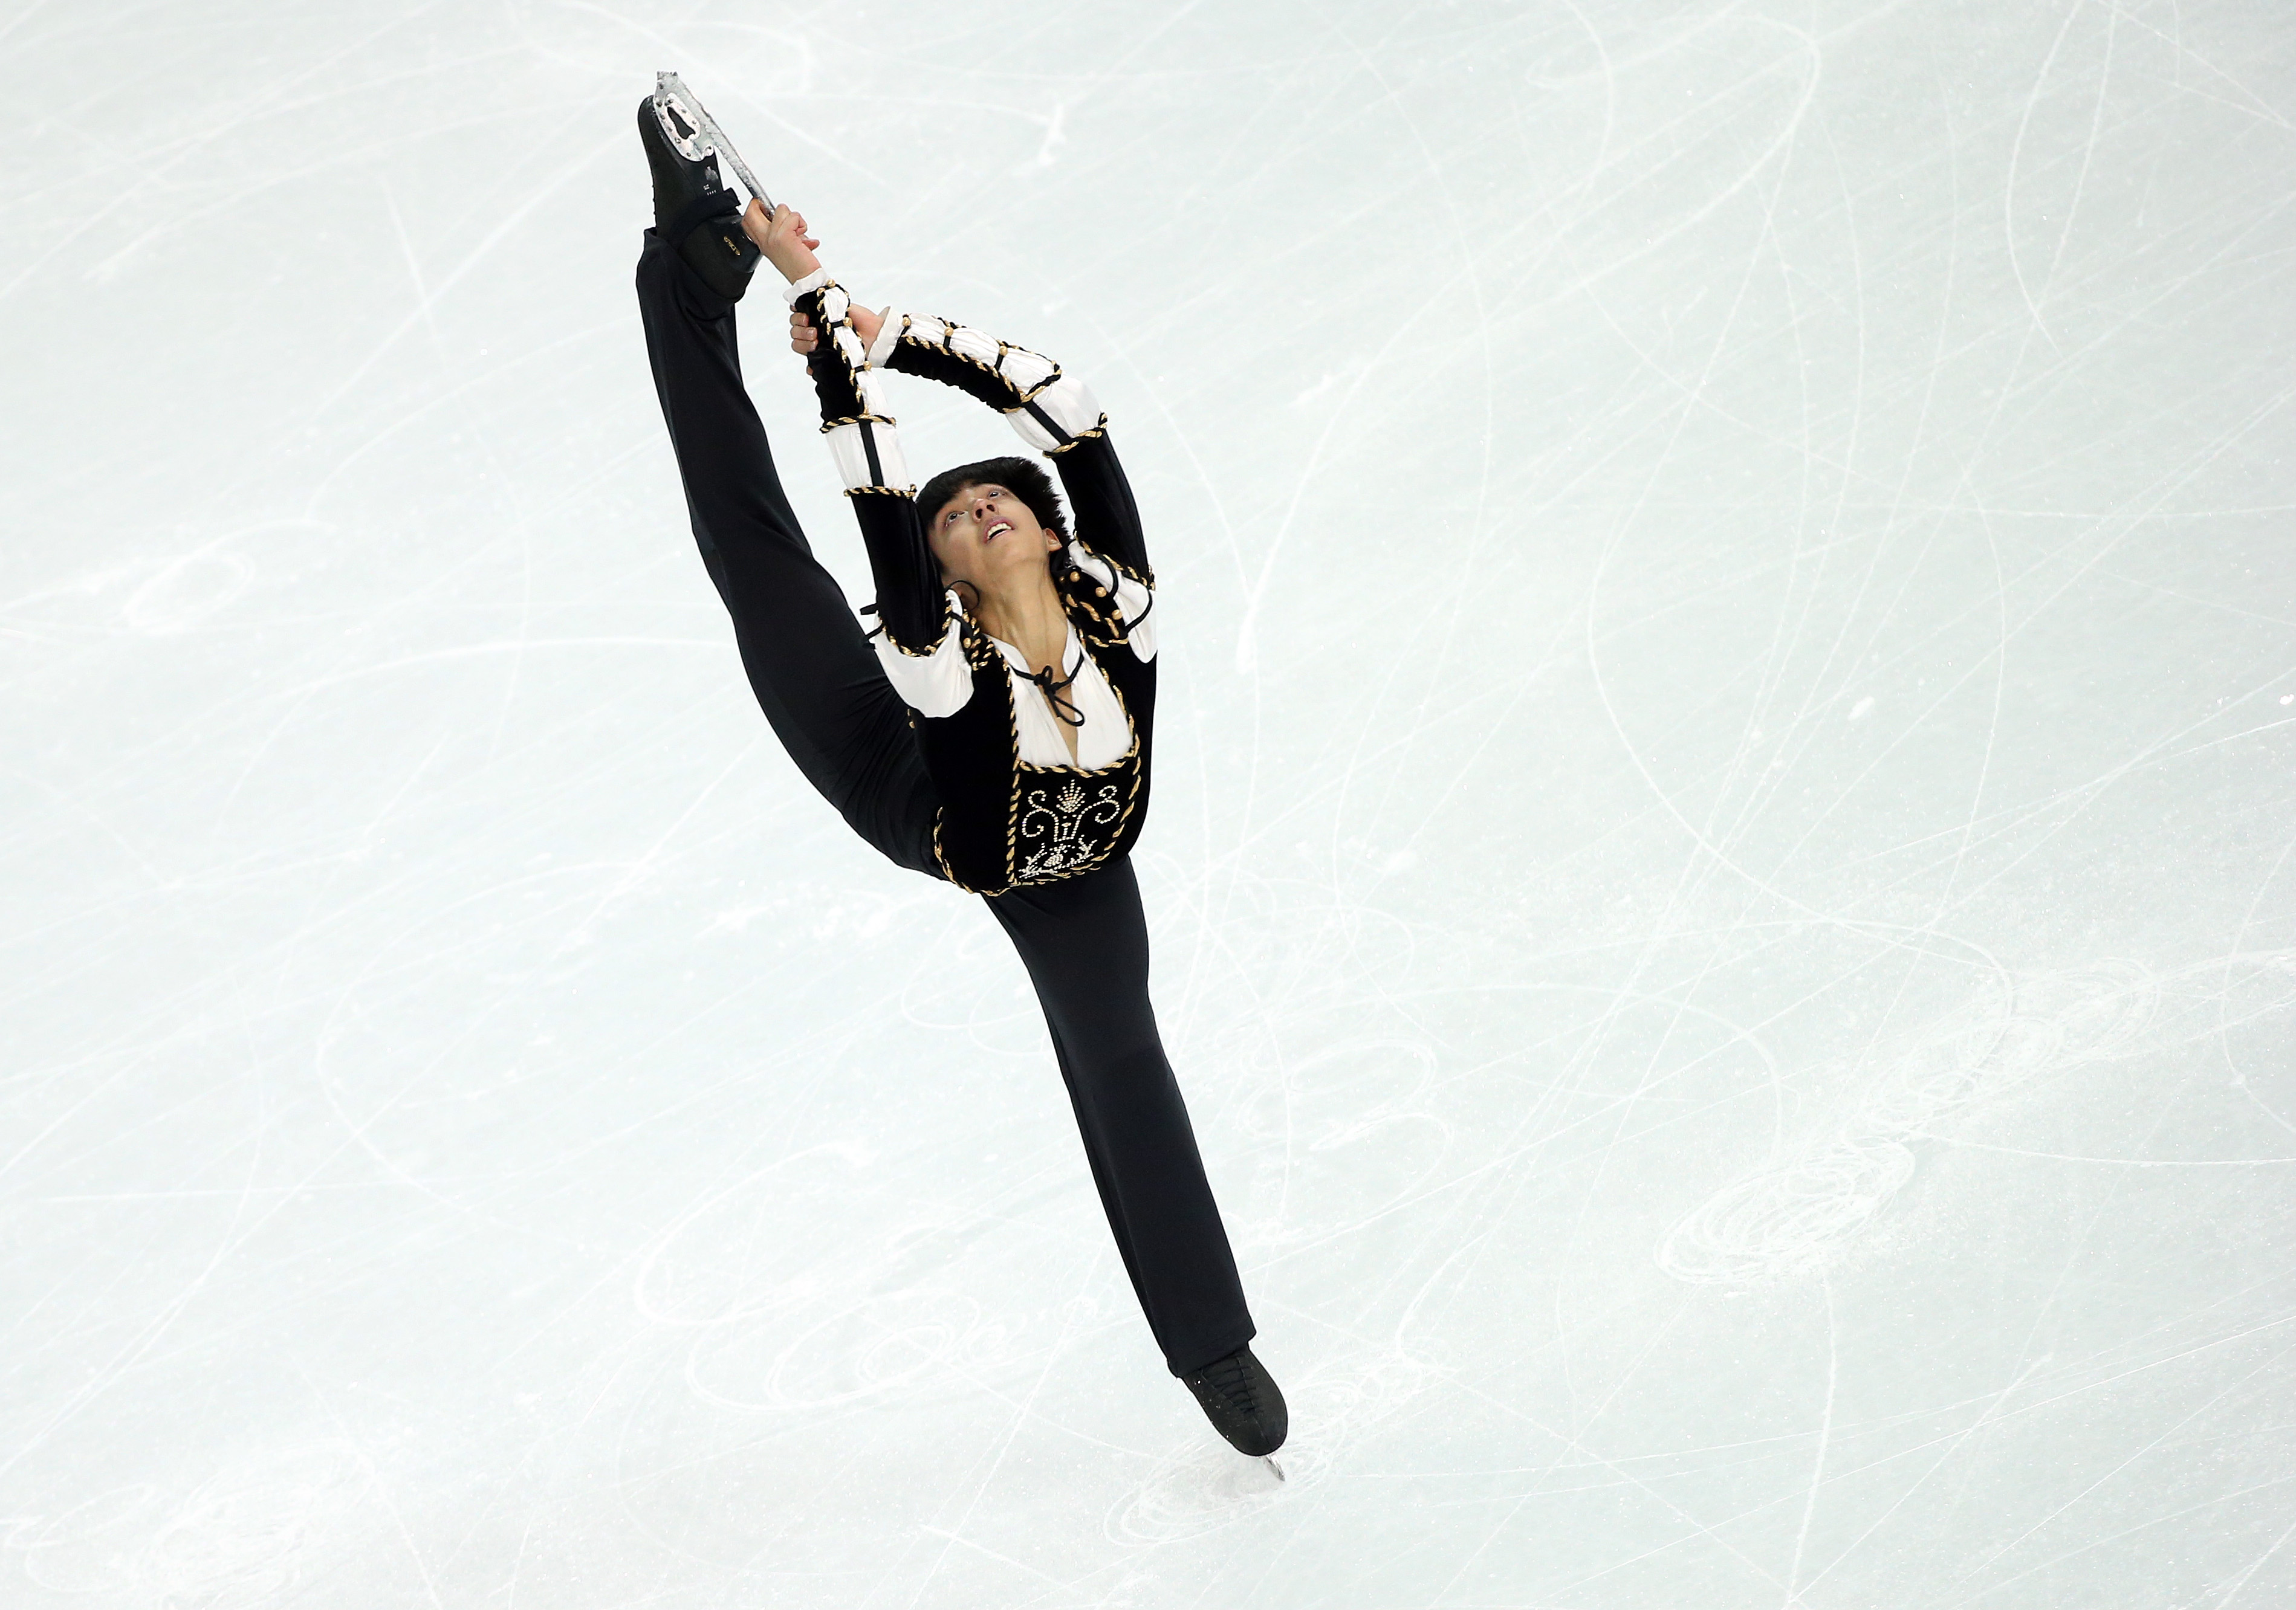 Michael Christian Martinez of Philippinesperforms during the Men's Short Program of the Figure Skating event. Seventeen-year-old Michael Christian Martinez is the first figure skater from the Philippines and the first skater from any tropical country to compete in the Olympics.